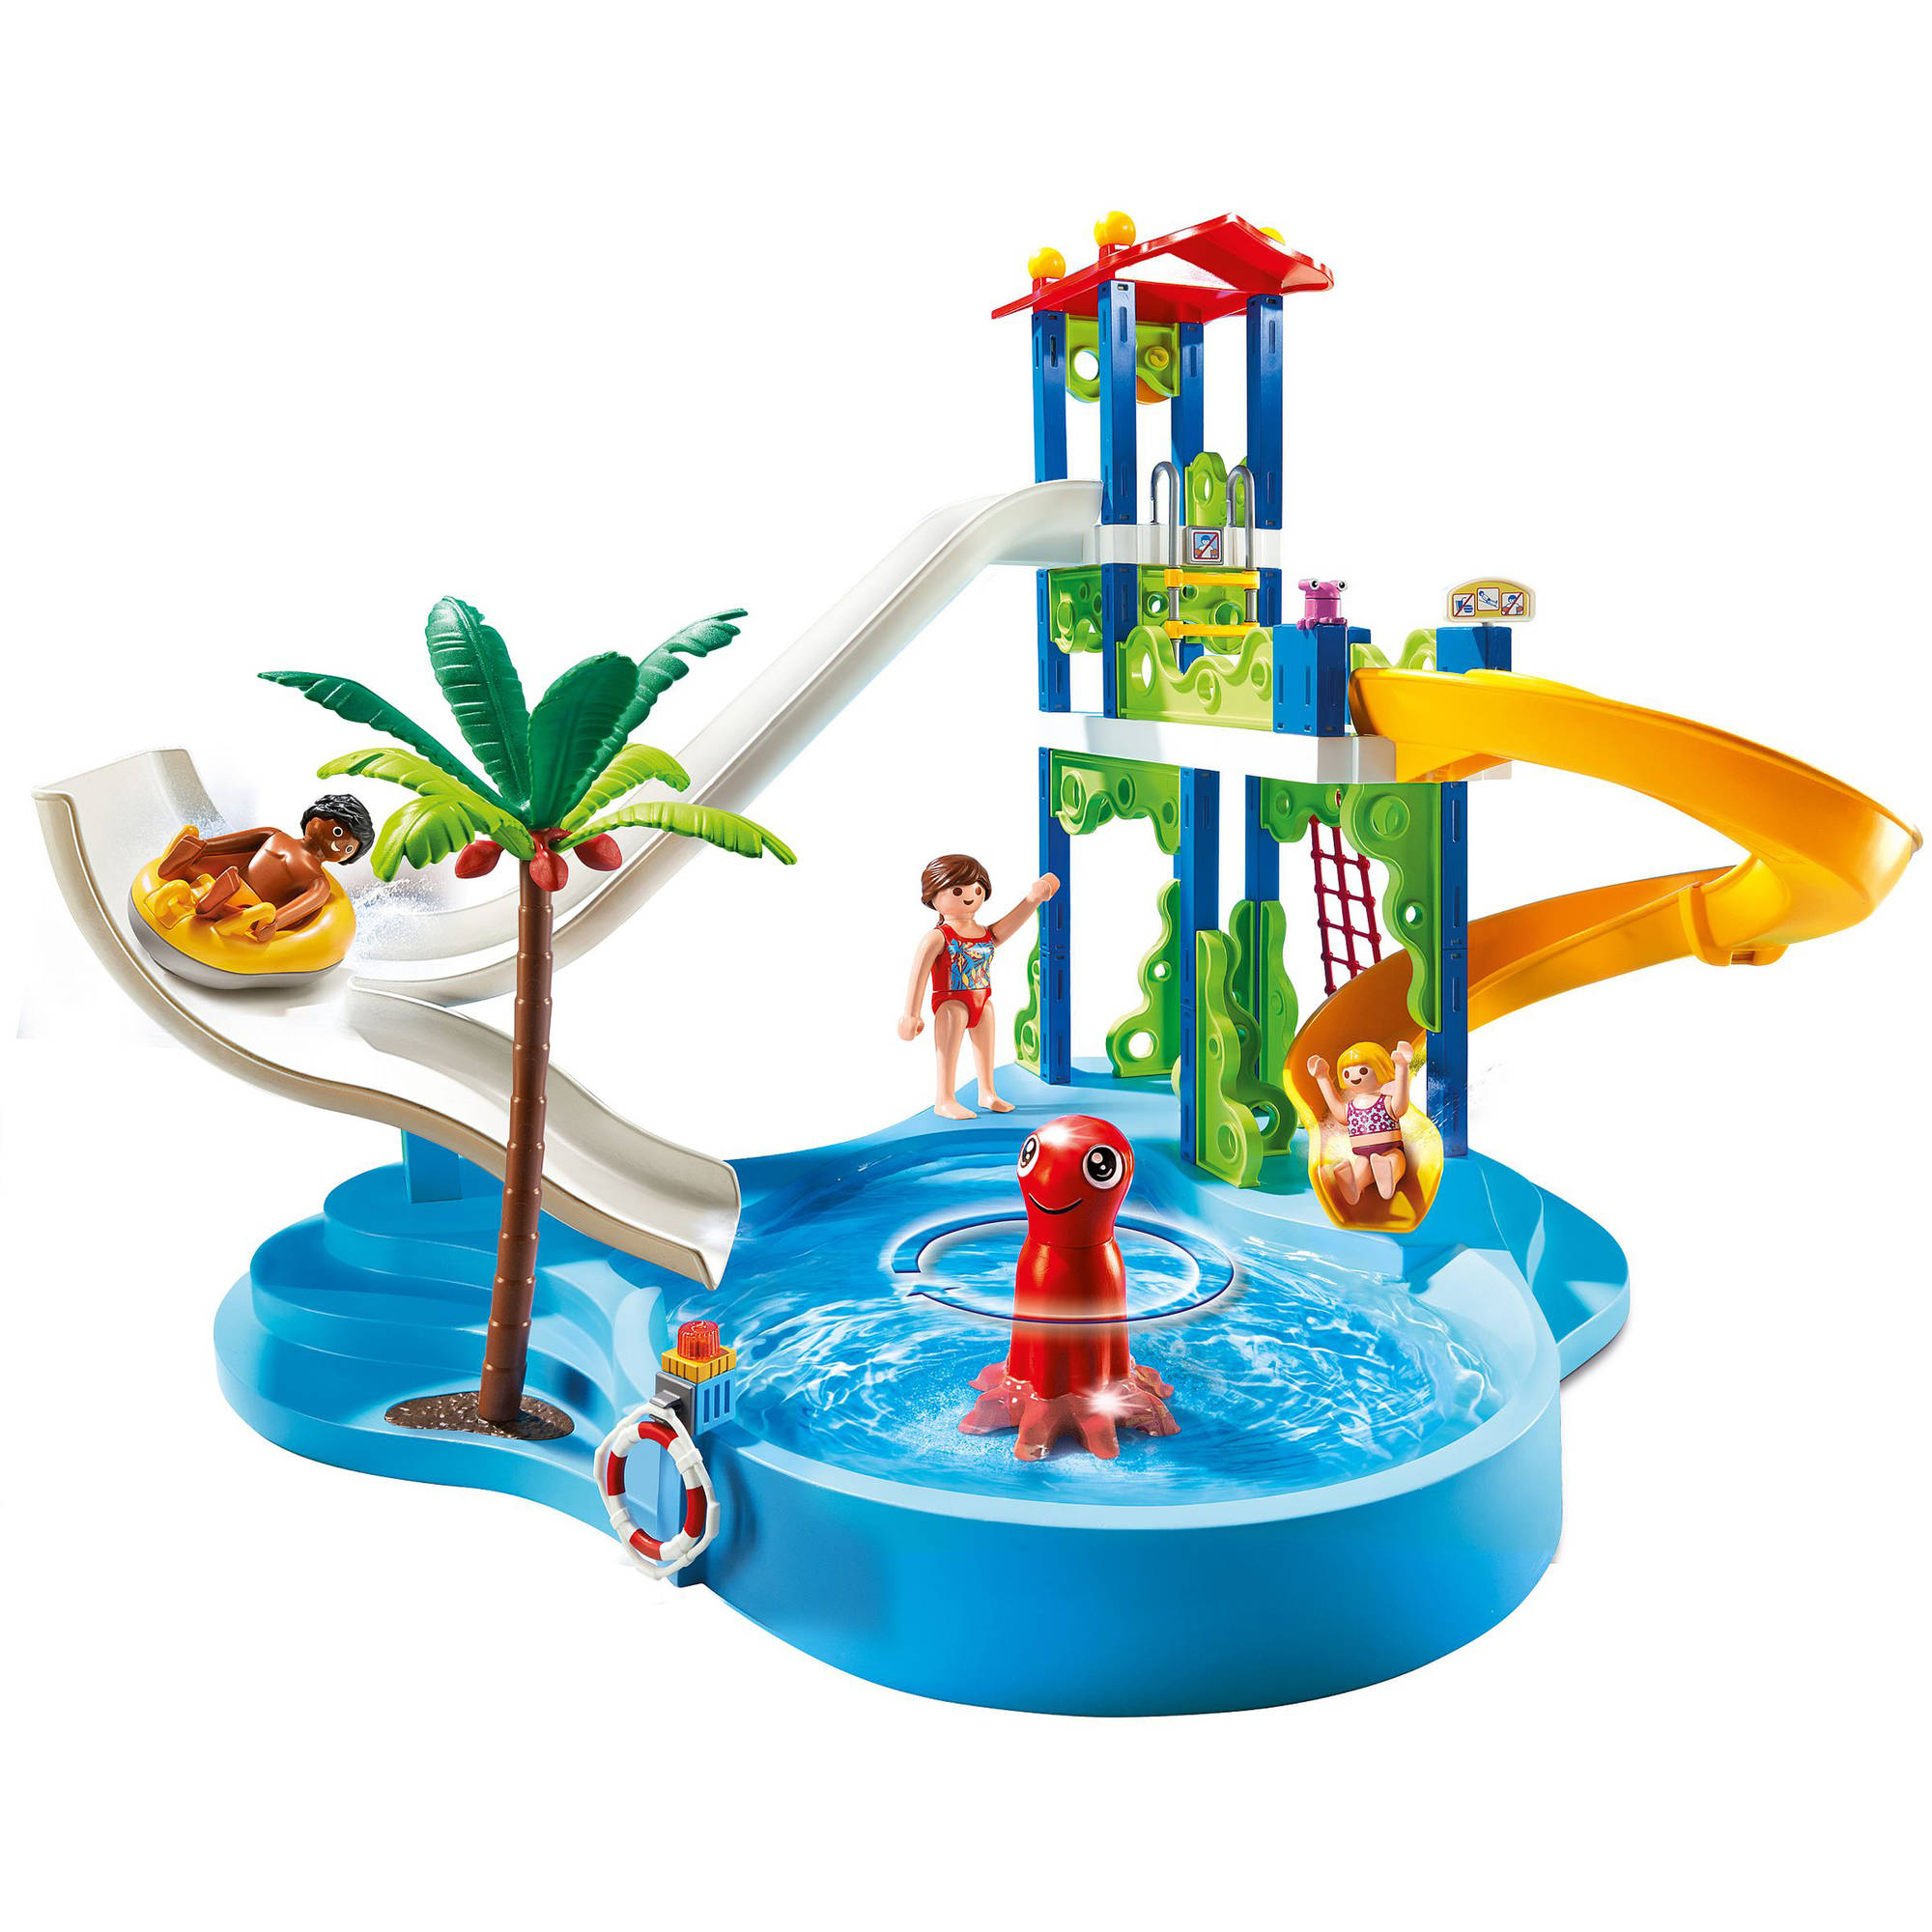 Lovely PLAYMOBIL Water Park With Slides